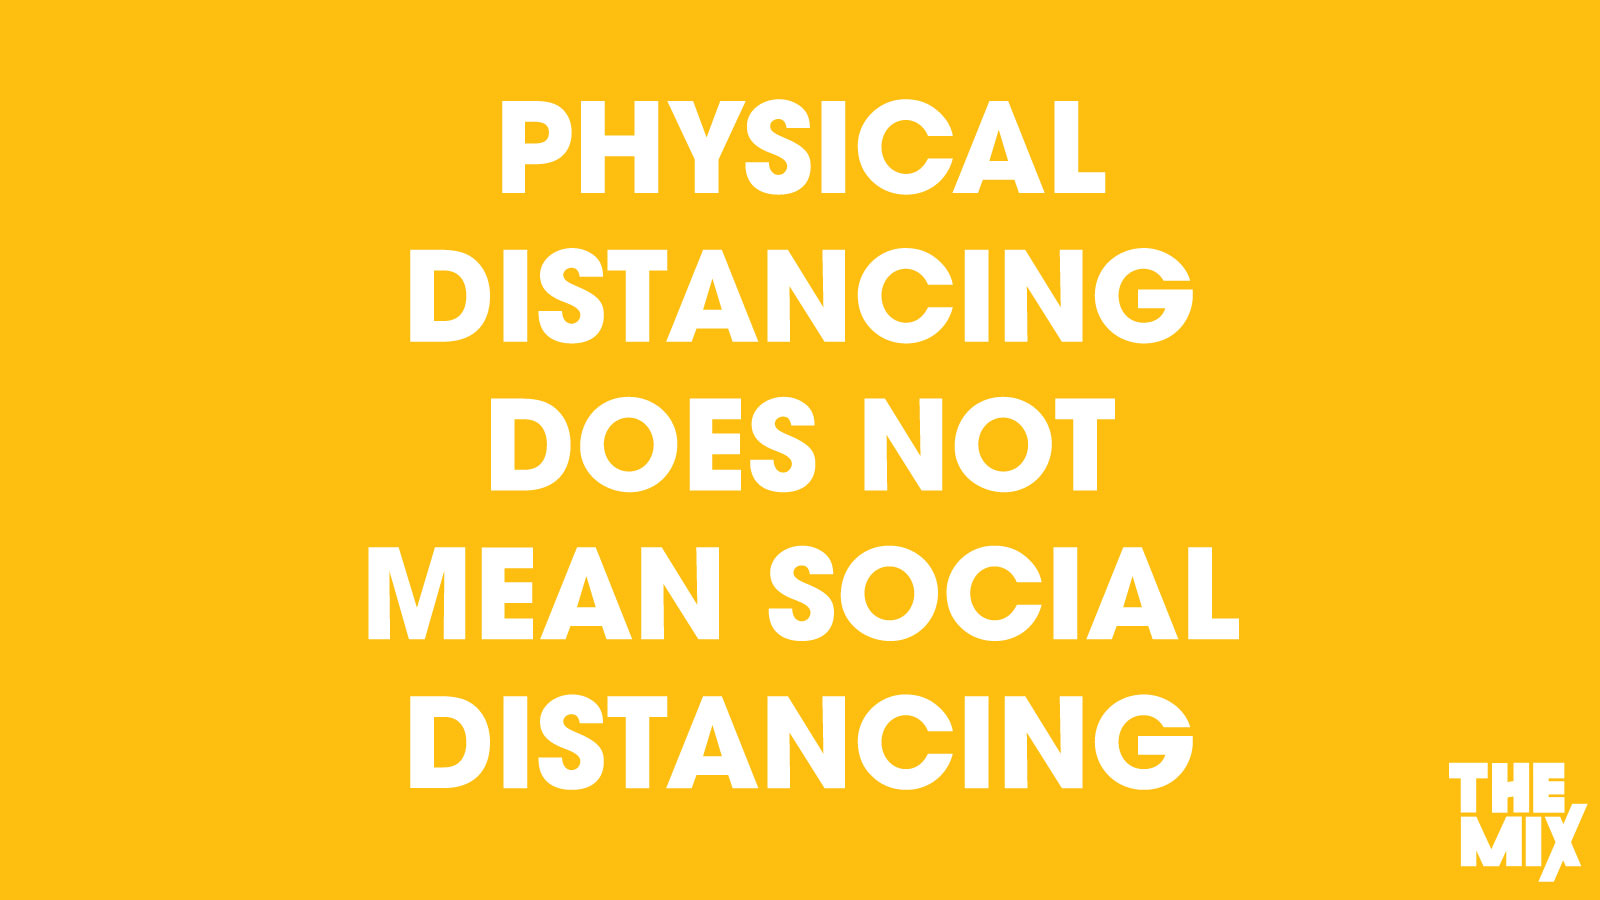 Social Distancing The Mix graphic